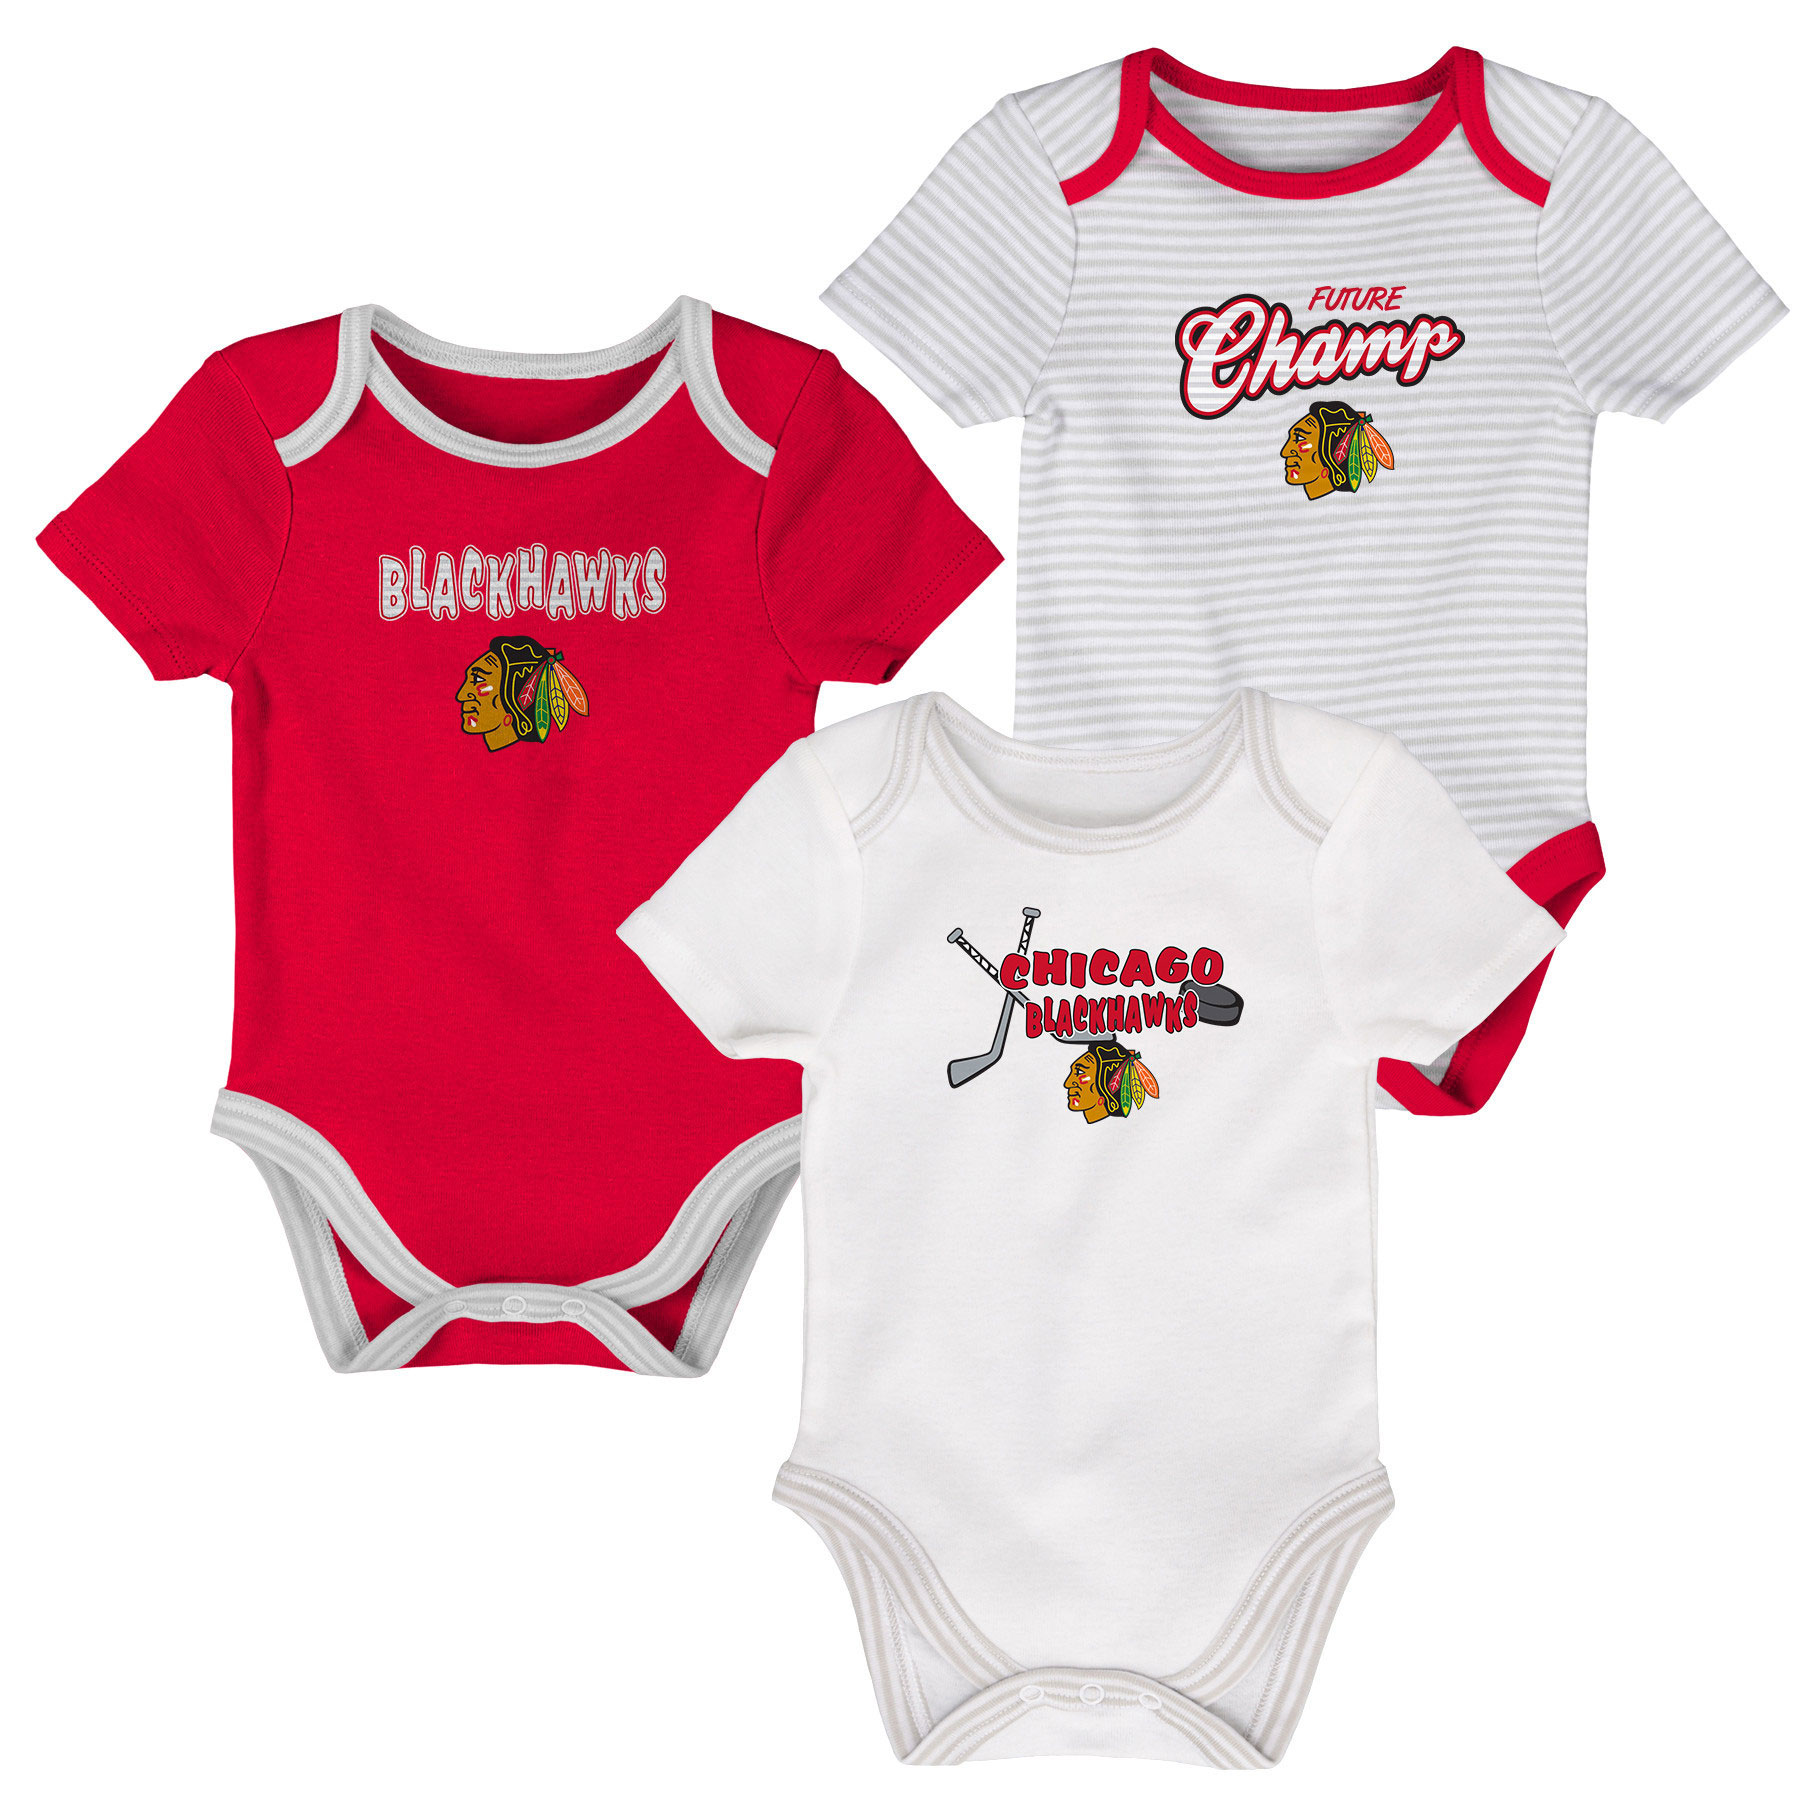 3c8a81e8d6d TheSportsDen.ca: Chicago Blackhawks Newborn 3rd Period 3-Piece ...